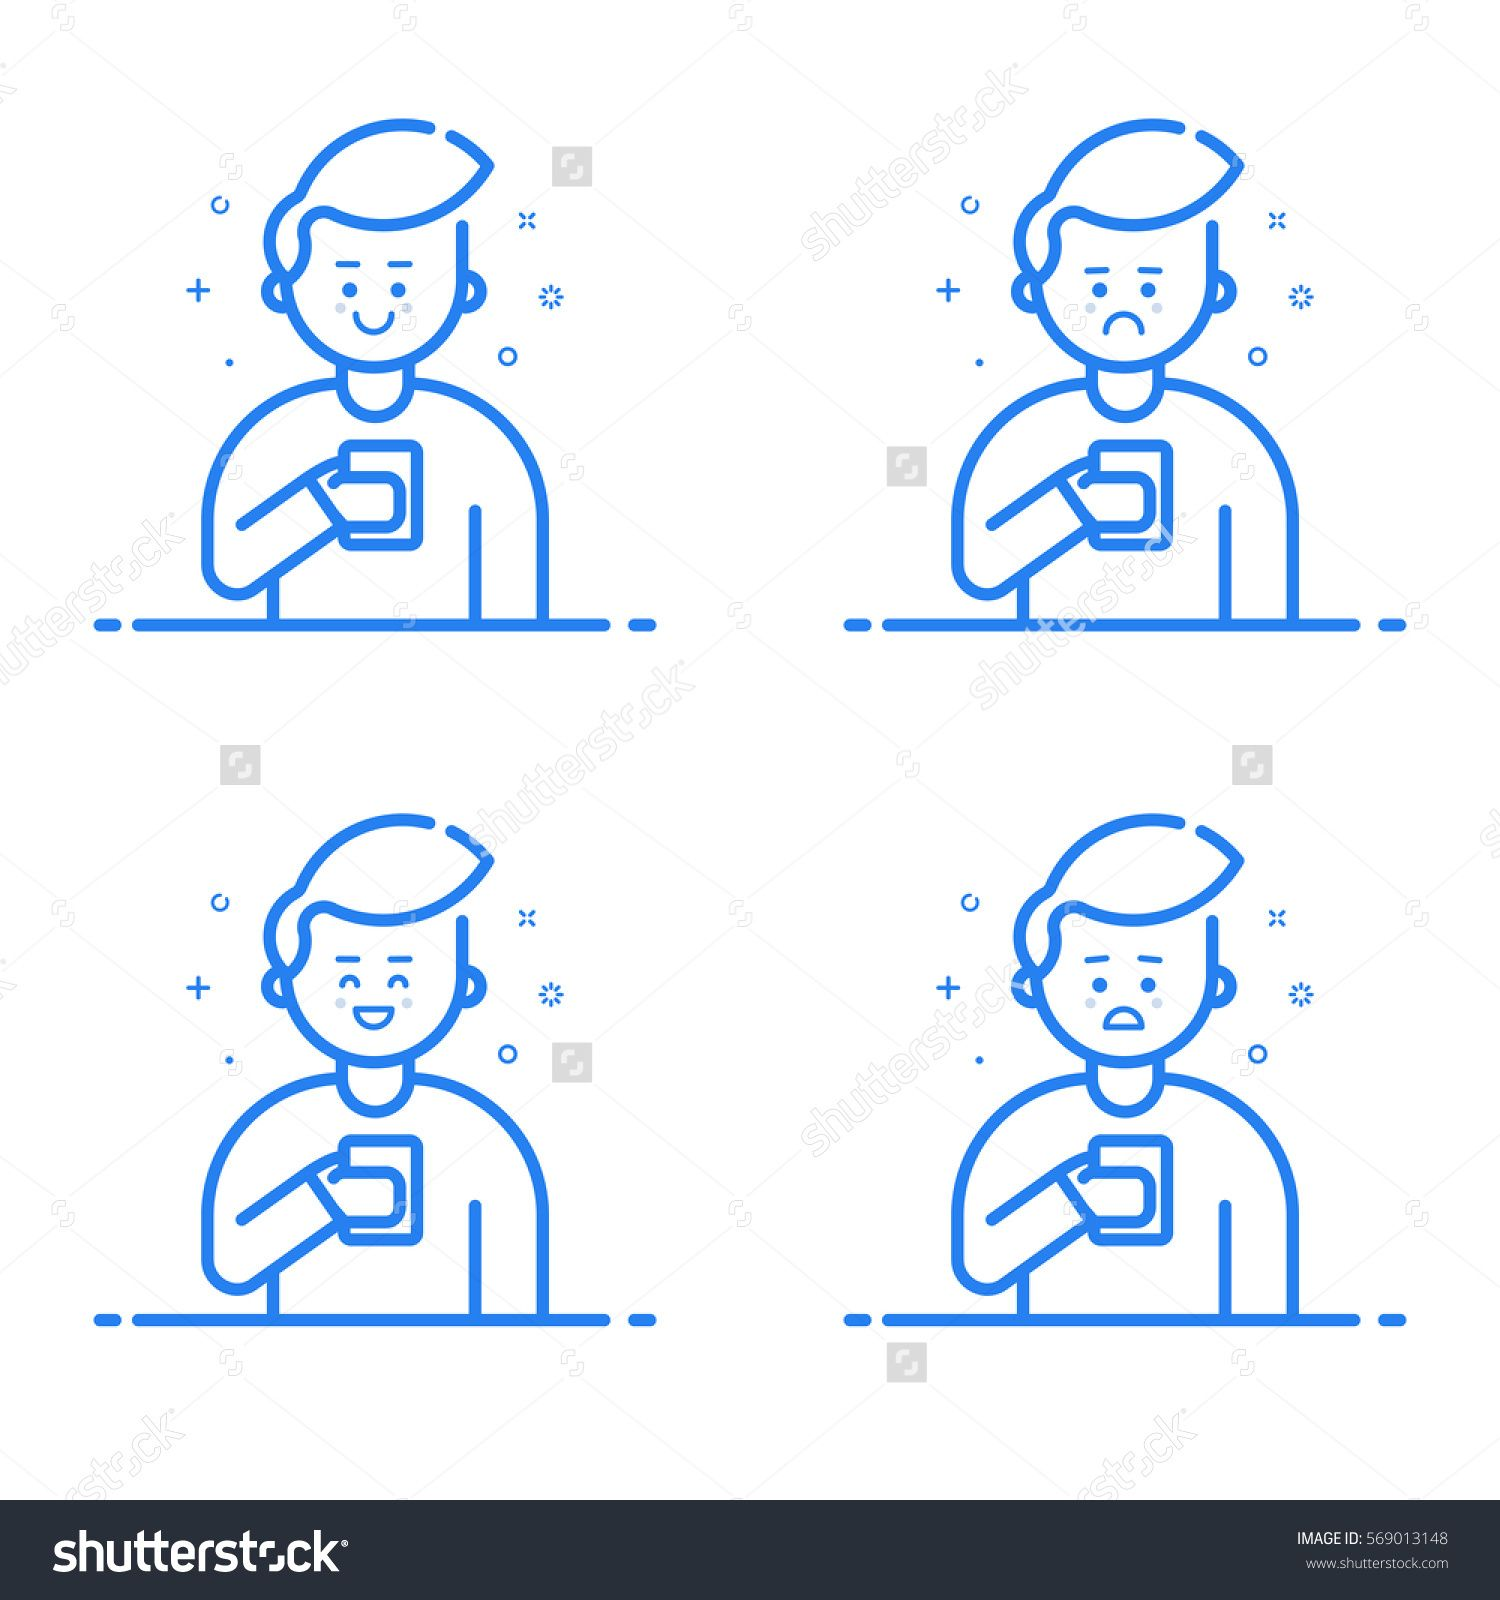 Vector illustration in flat linear style. Boy holding mobile phone with different expressions on his face. Smartphone addict receiving notifications and messages - outline stock vector